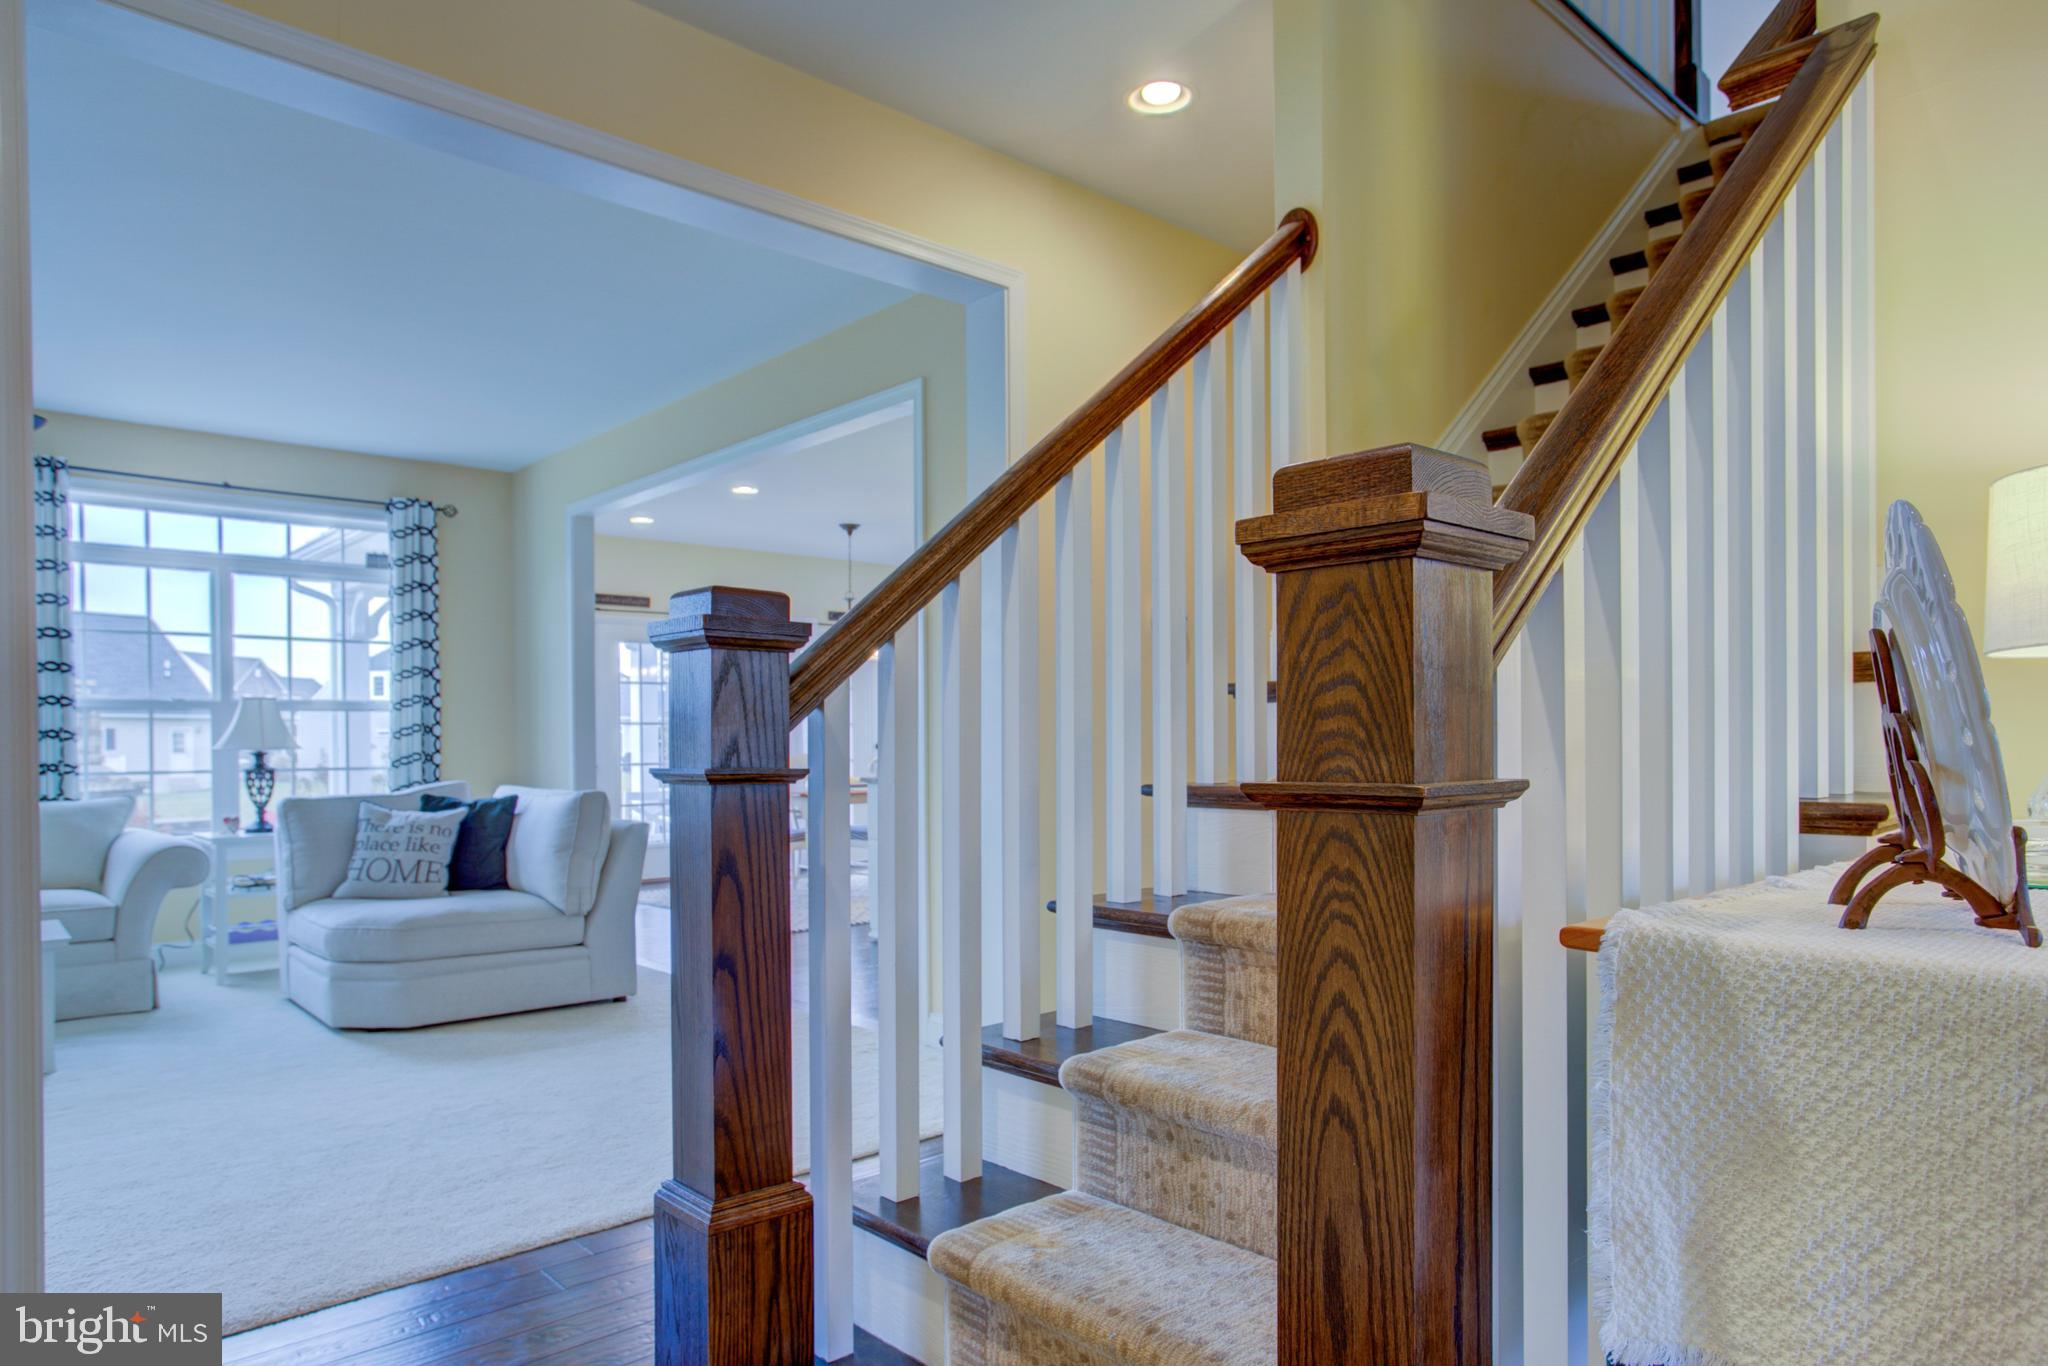 Stairwell to Family Room View